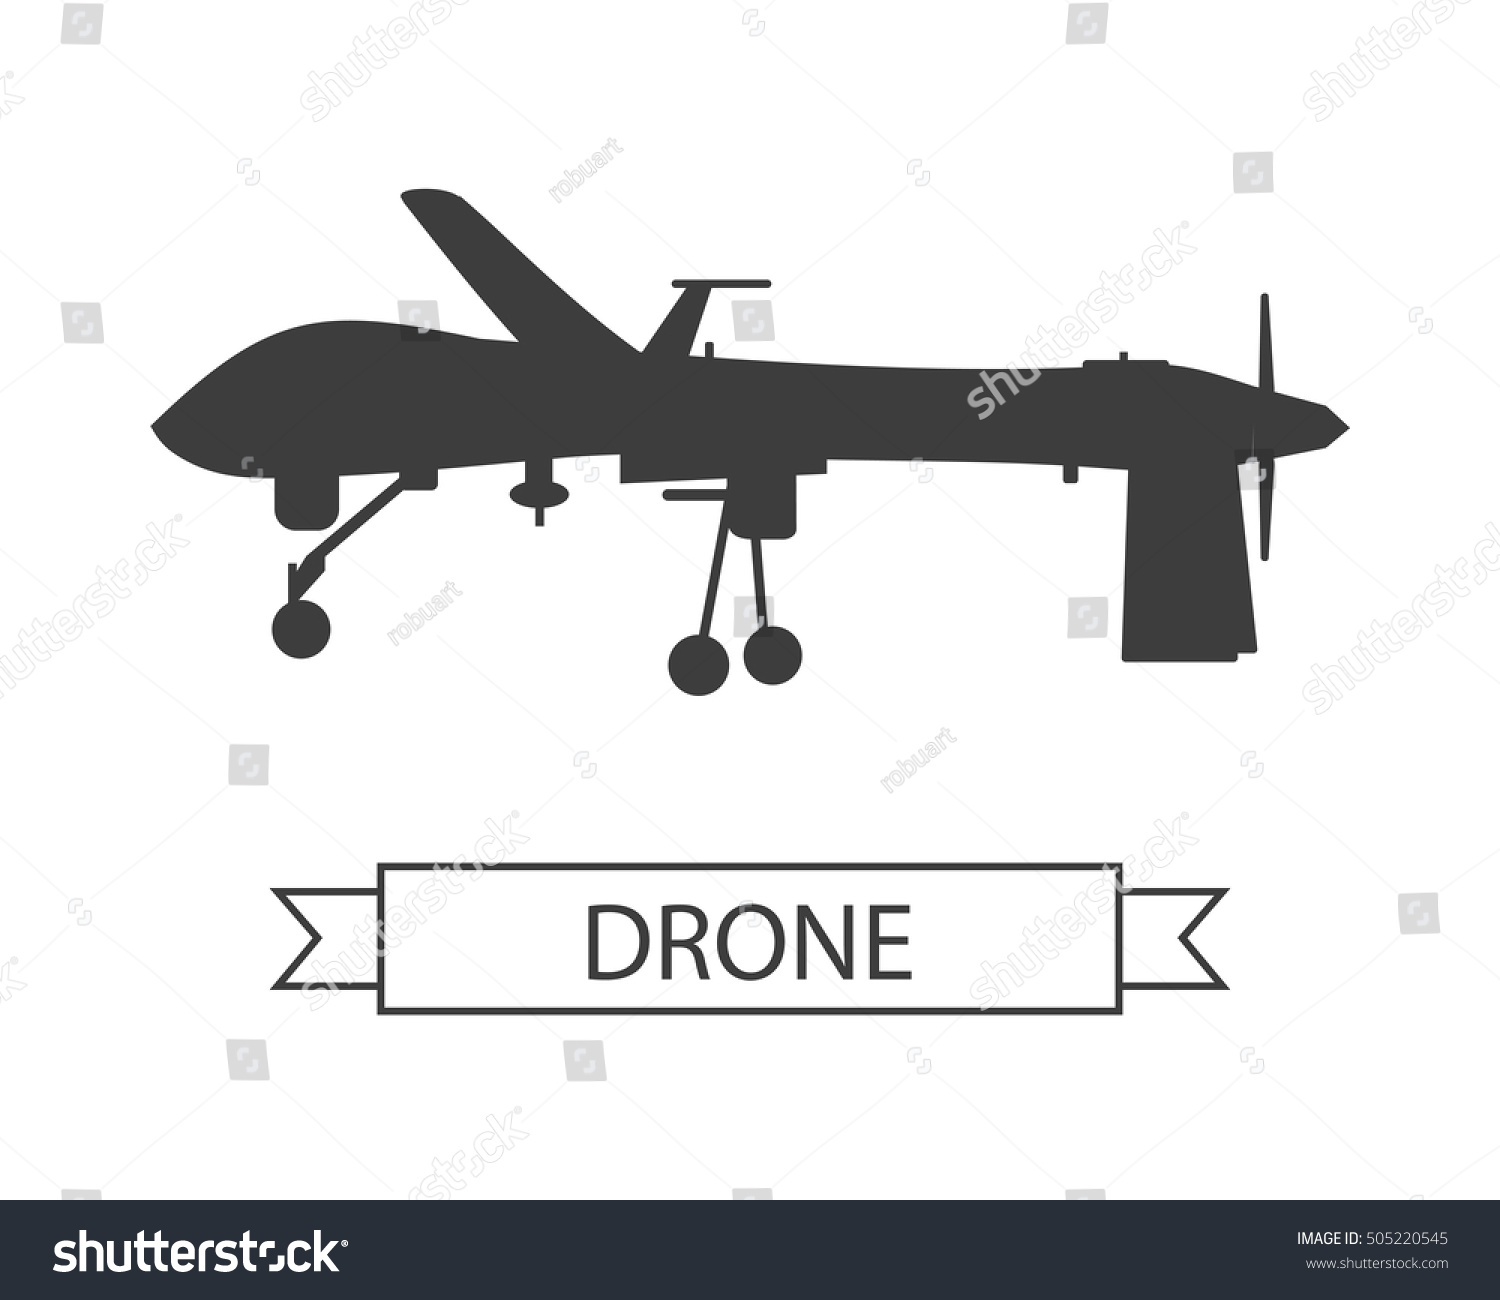 drone icon isolated on white unmanned stock vector 505220545 shutterstock. Black Bedroom Furniture Sets. Home Design Ideas